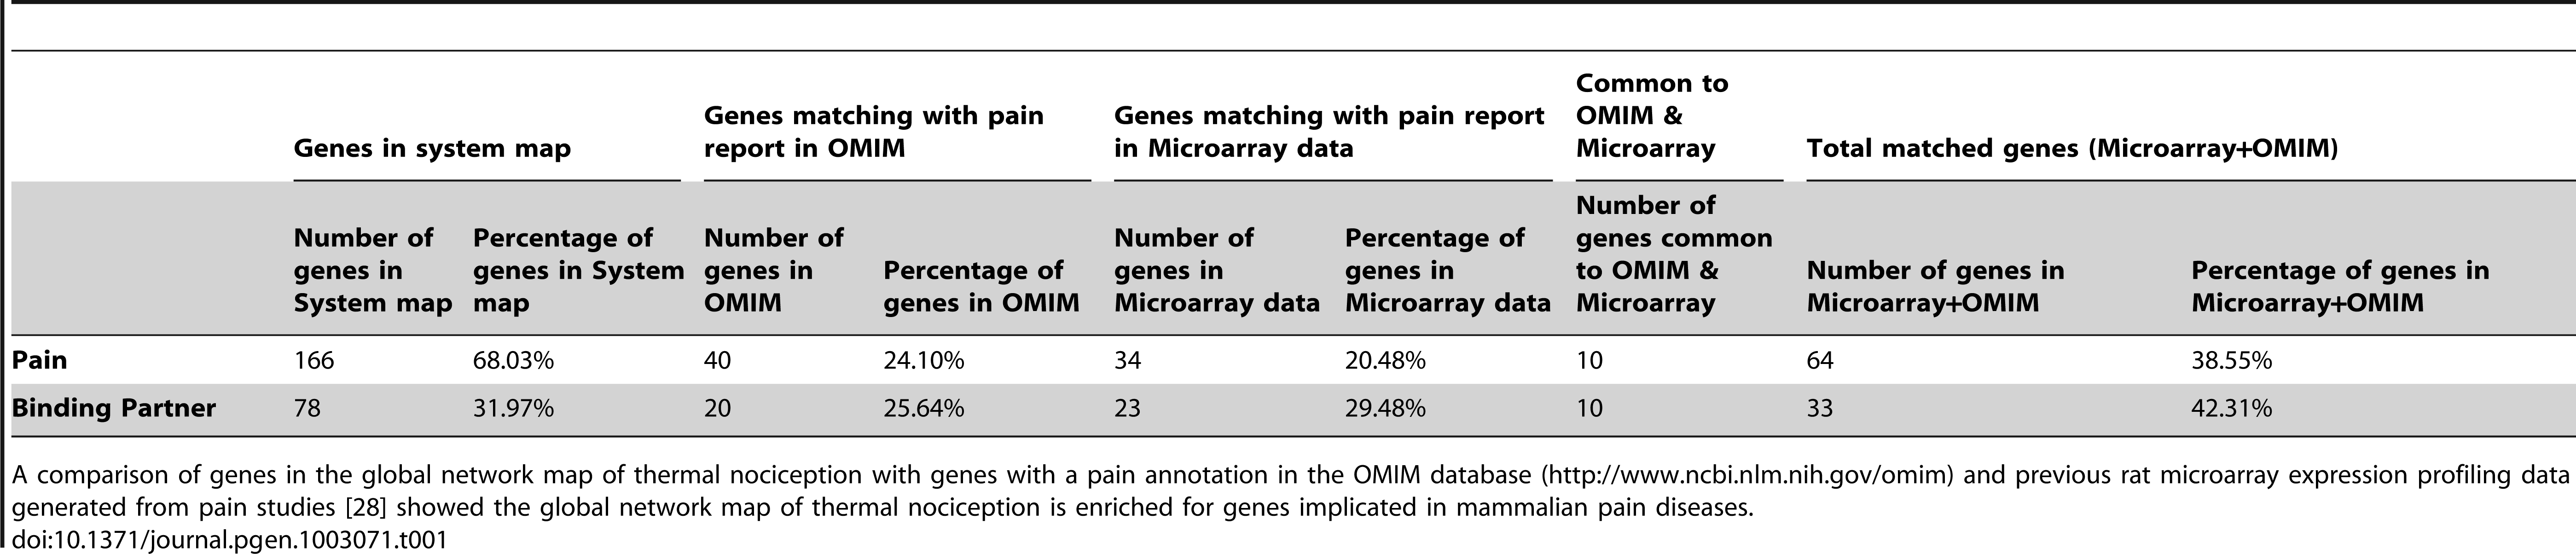 Comparison of systems map with microarray and OMIM data for pain.